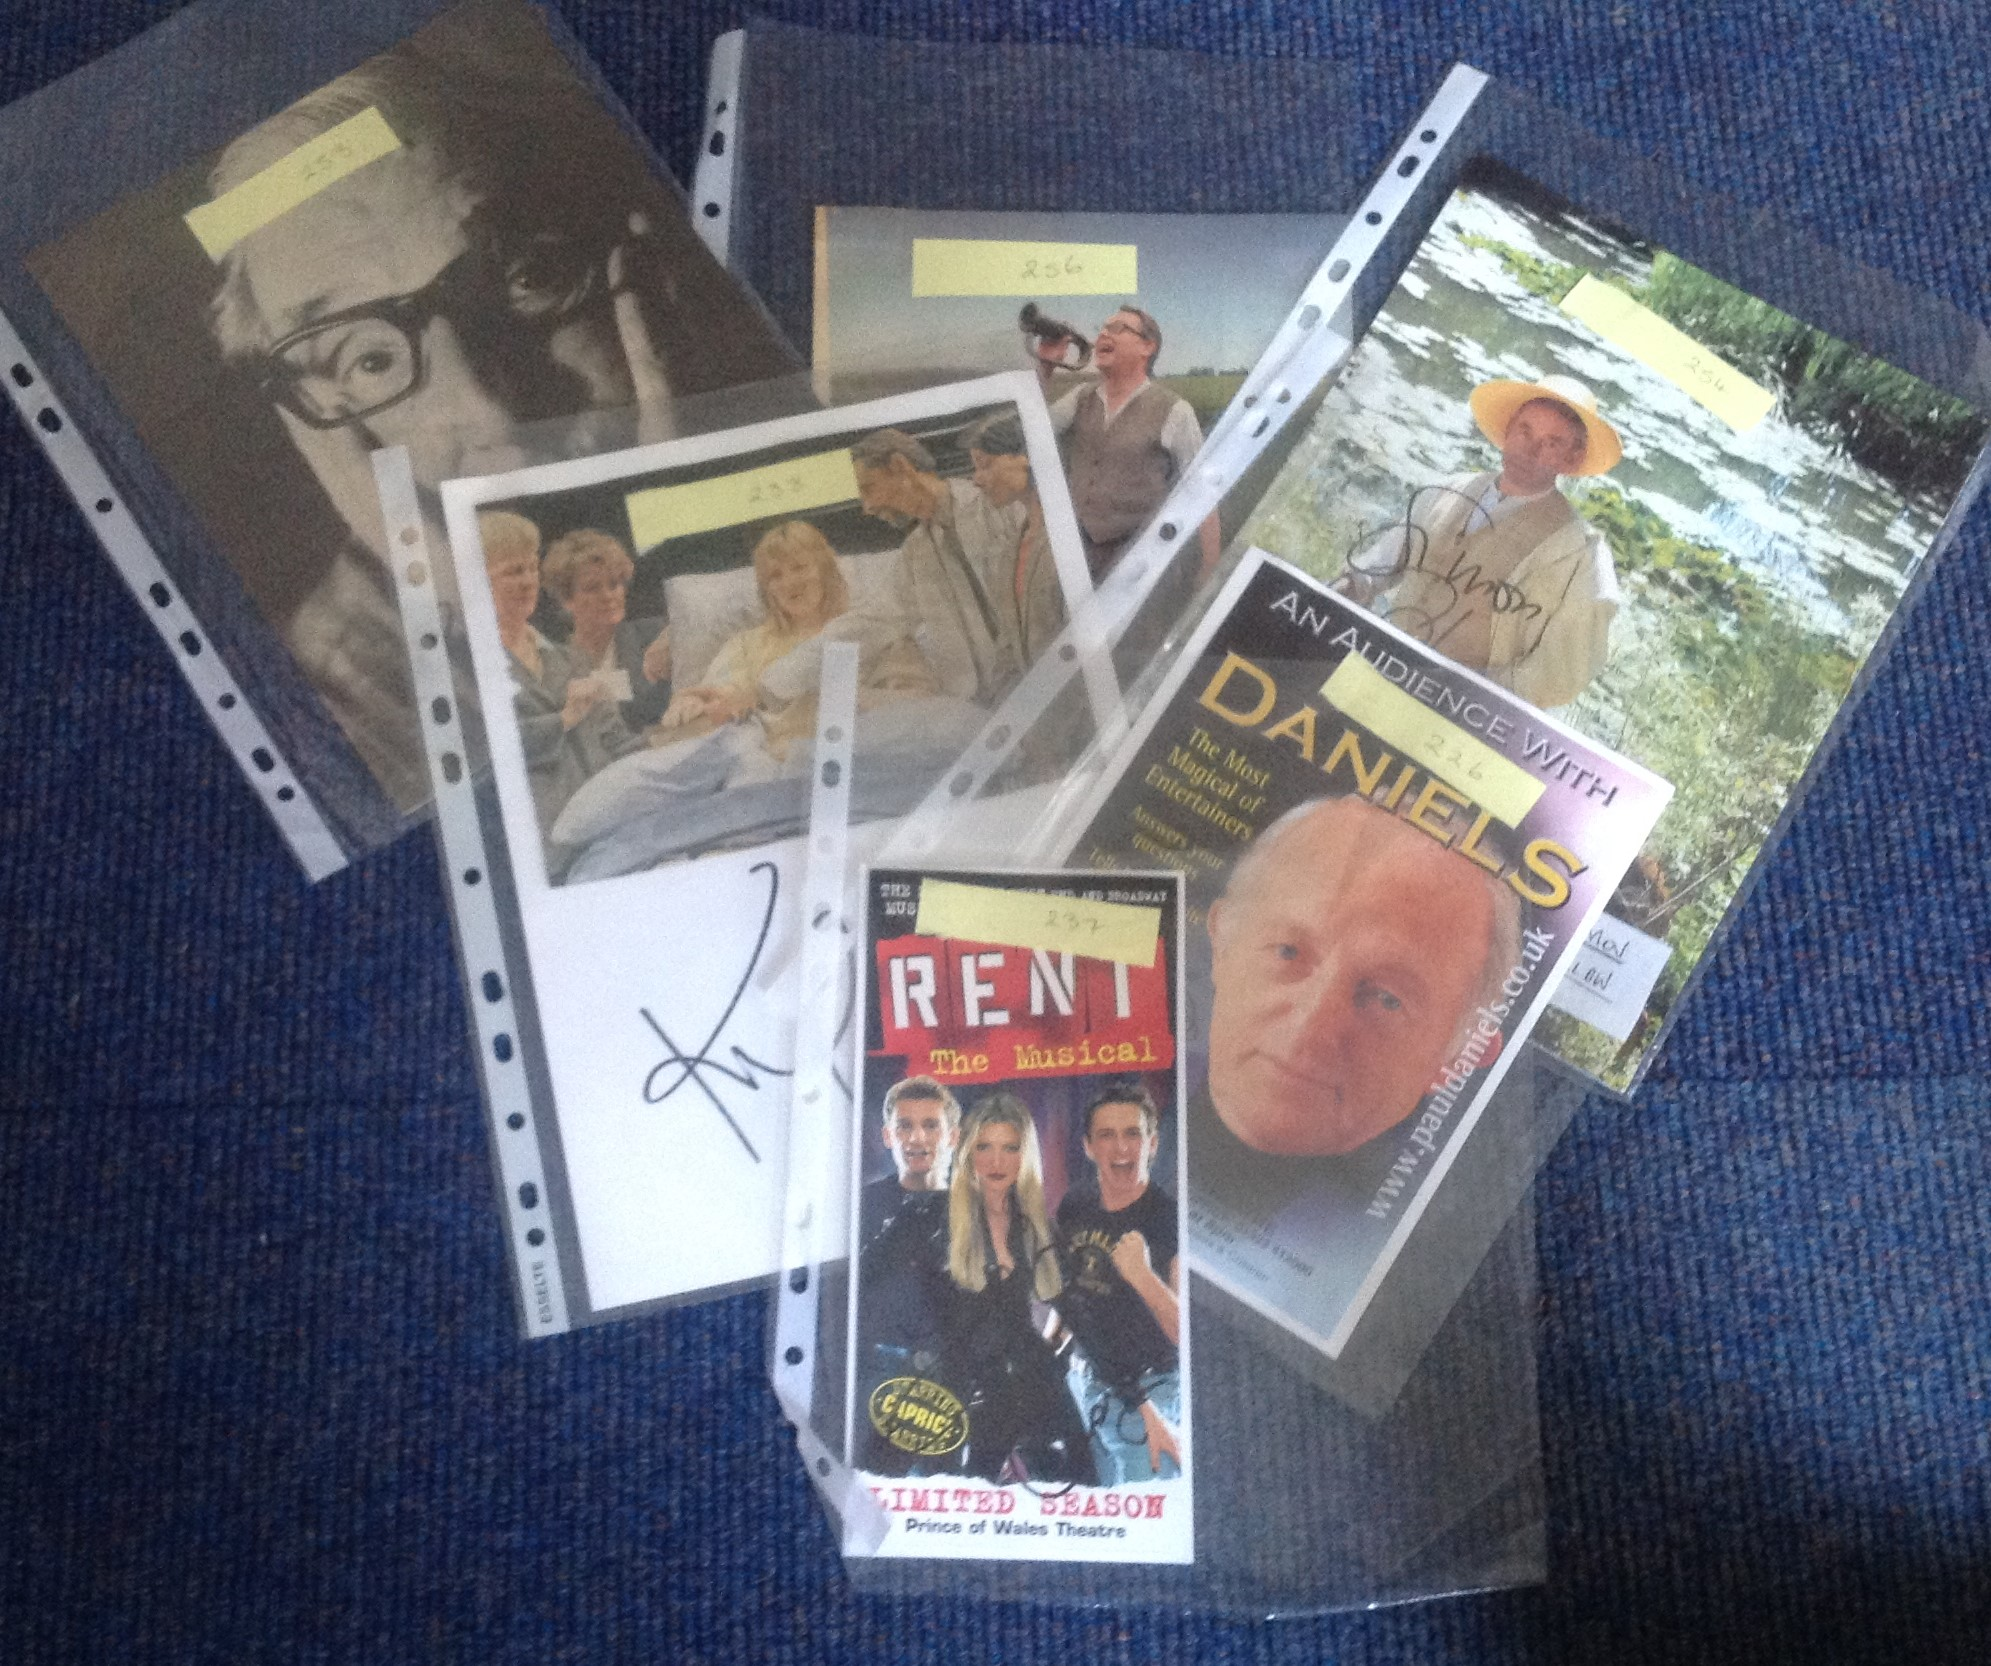 Lot 7 - TV signed collection. 6 items. Assortment of newspaper photos and flyers. Some of signatures